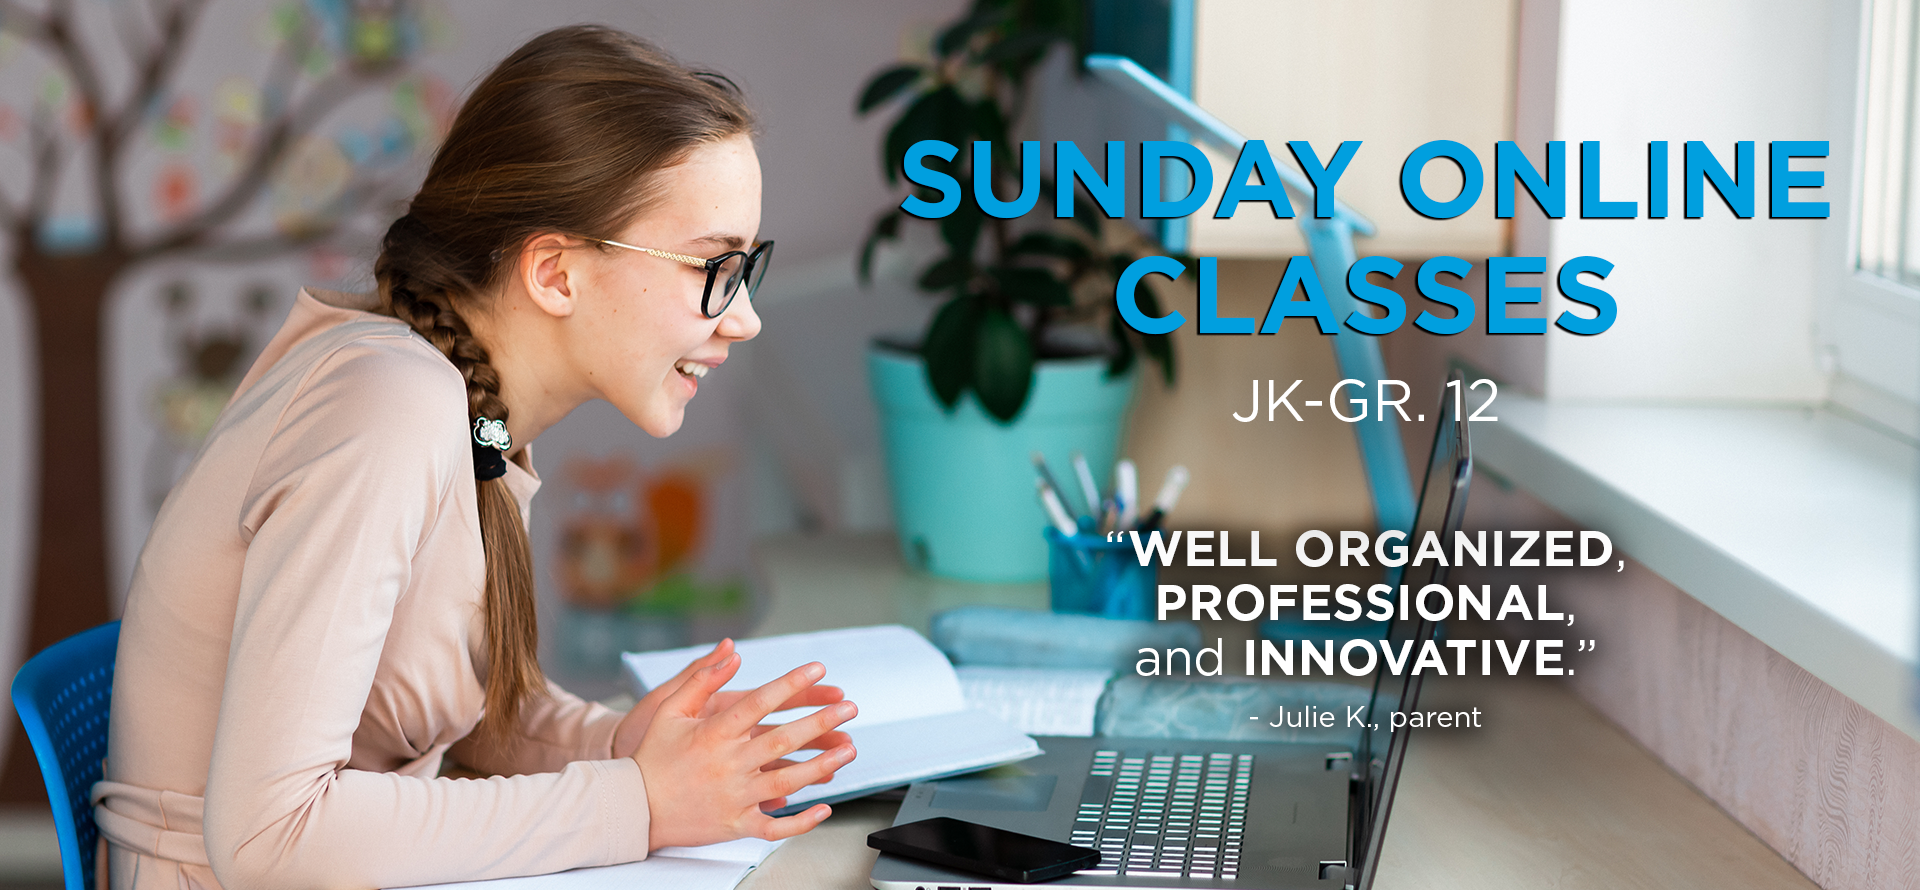 Sunday Online Classes